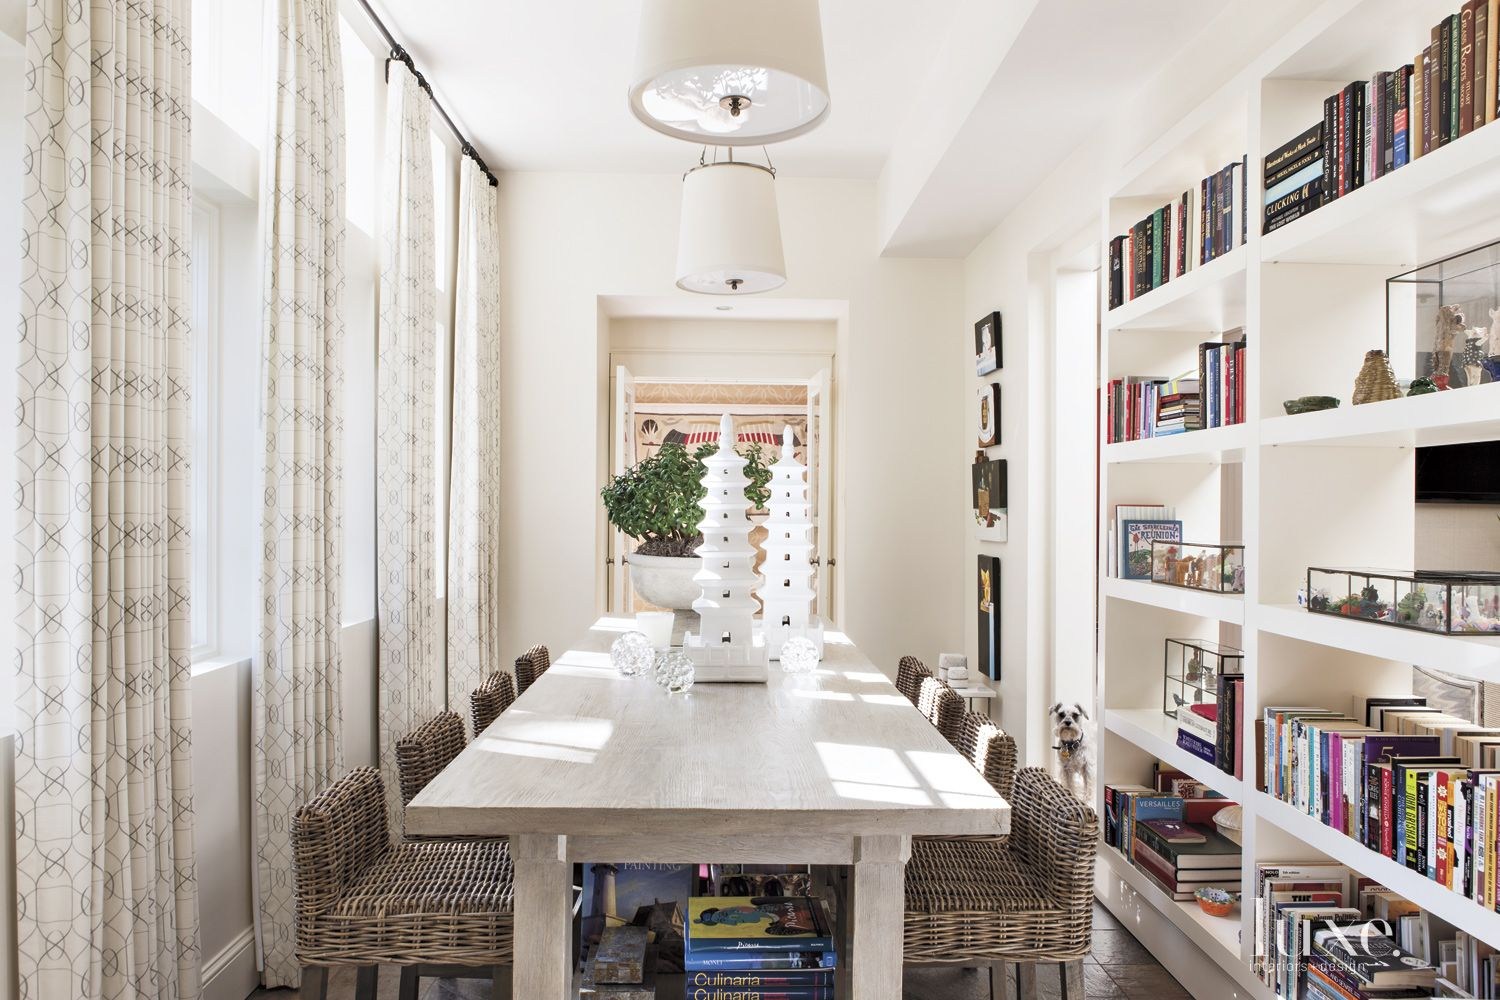 Eclectic White Study with Double-Sided Bookshelf